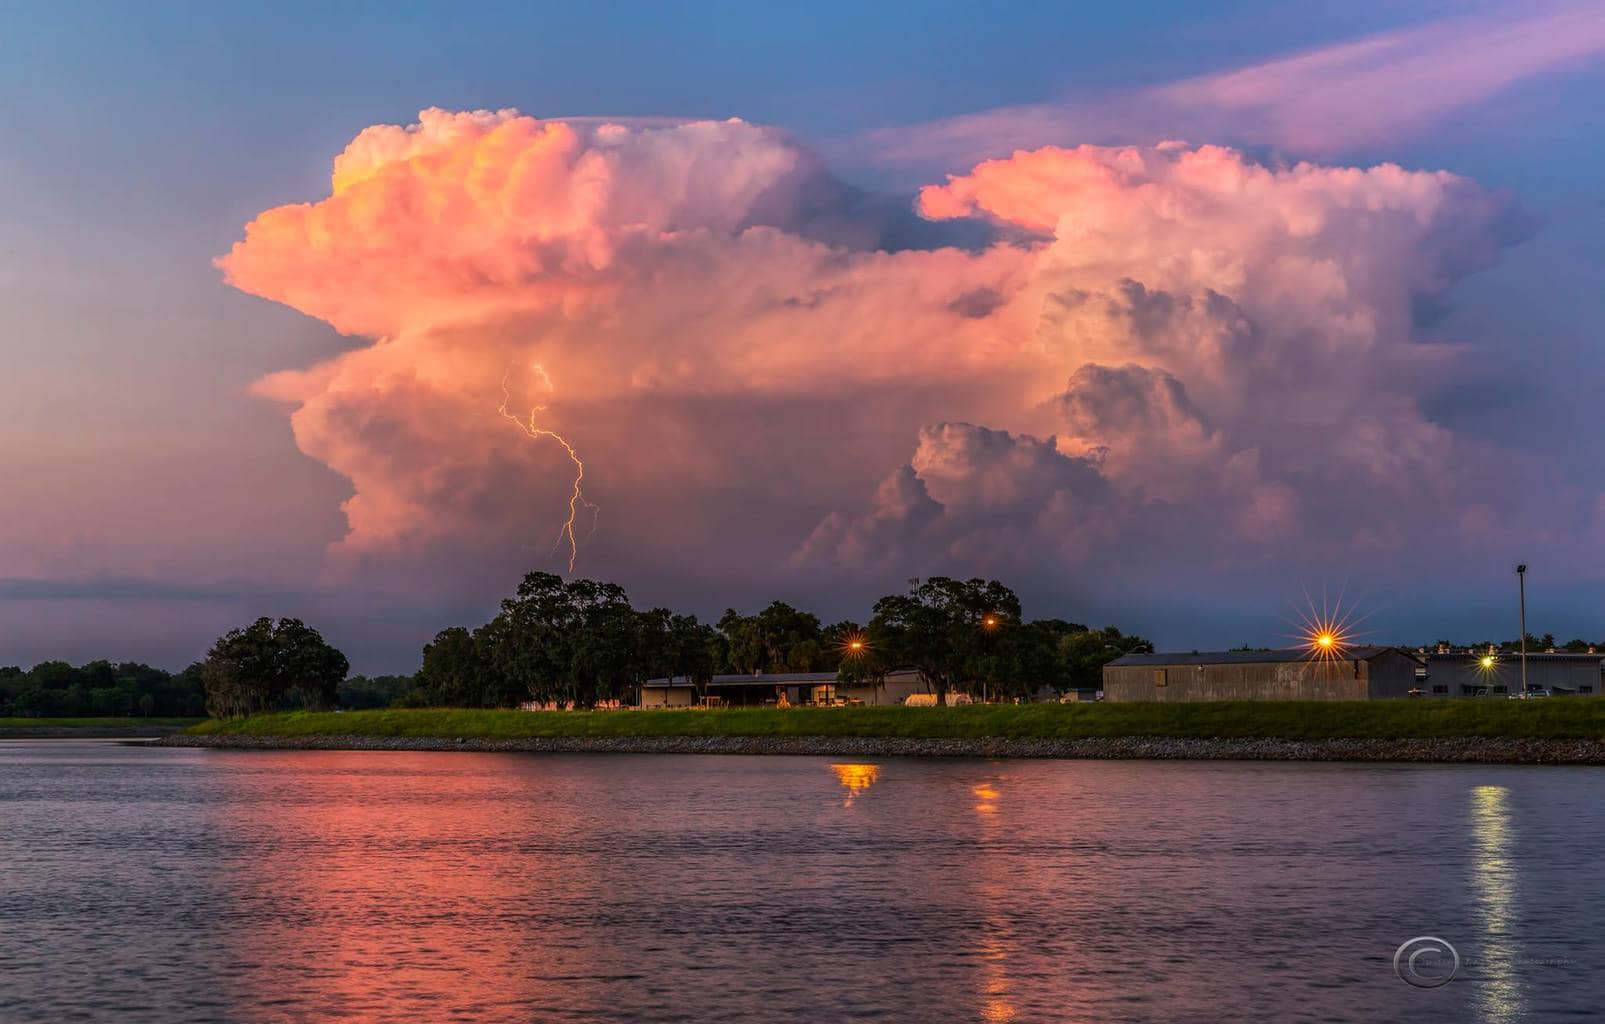 Two very photogenic storm cells and lightning near Tampa Florida yesterday at sunset